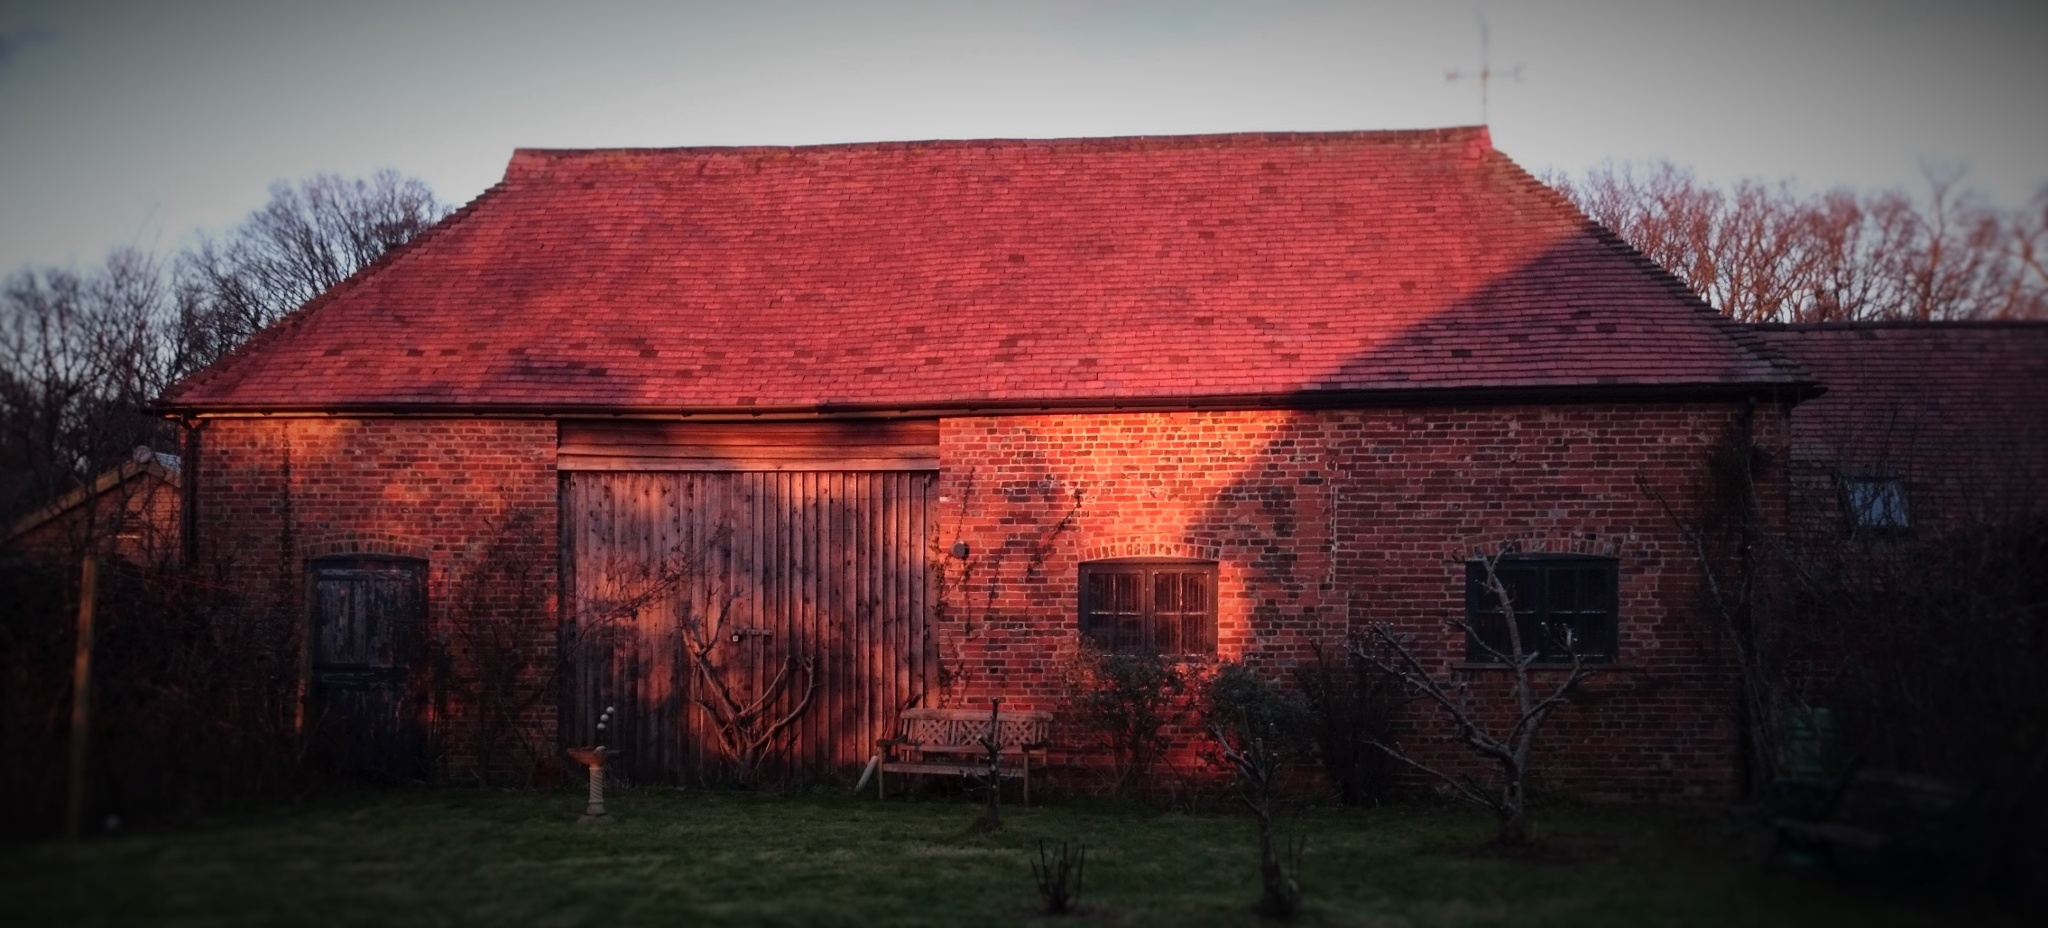 Sundown At The Stables by geoff richards